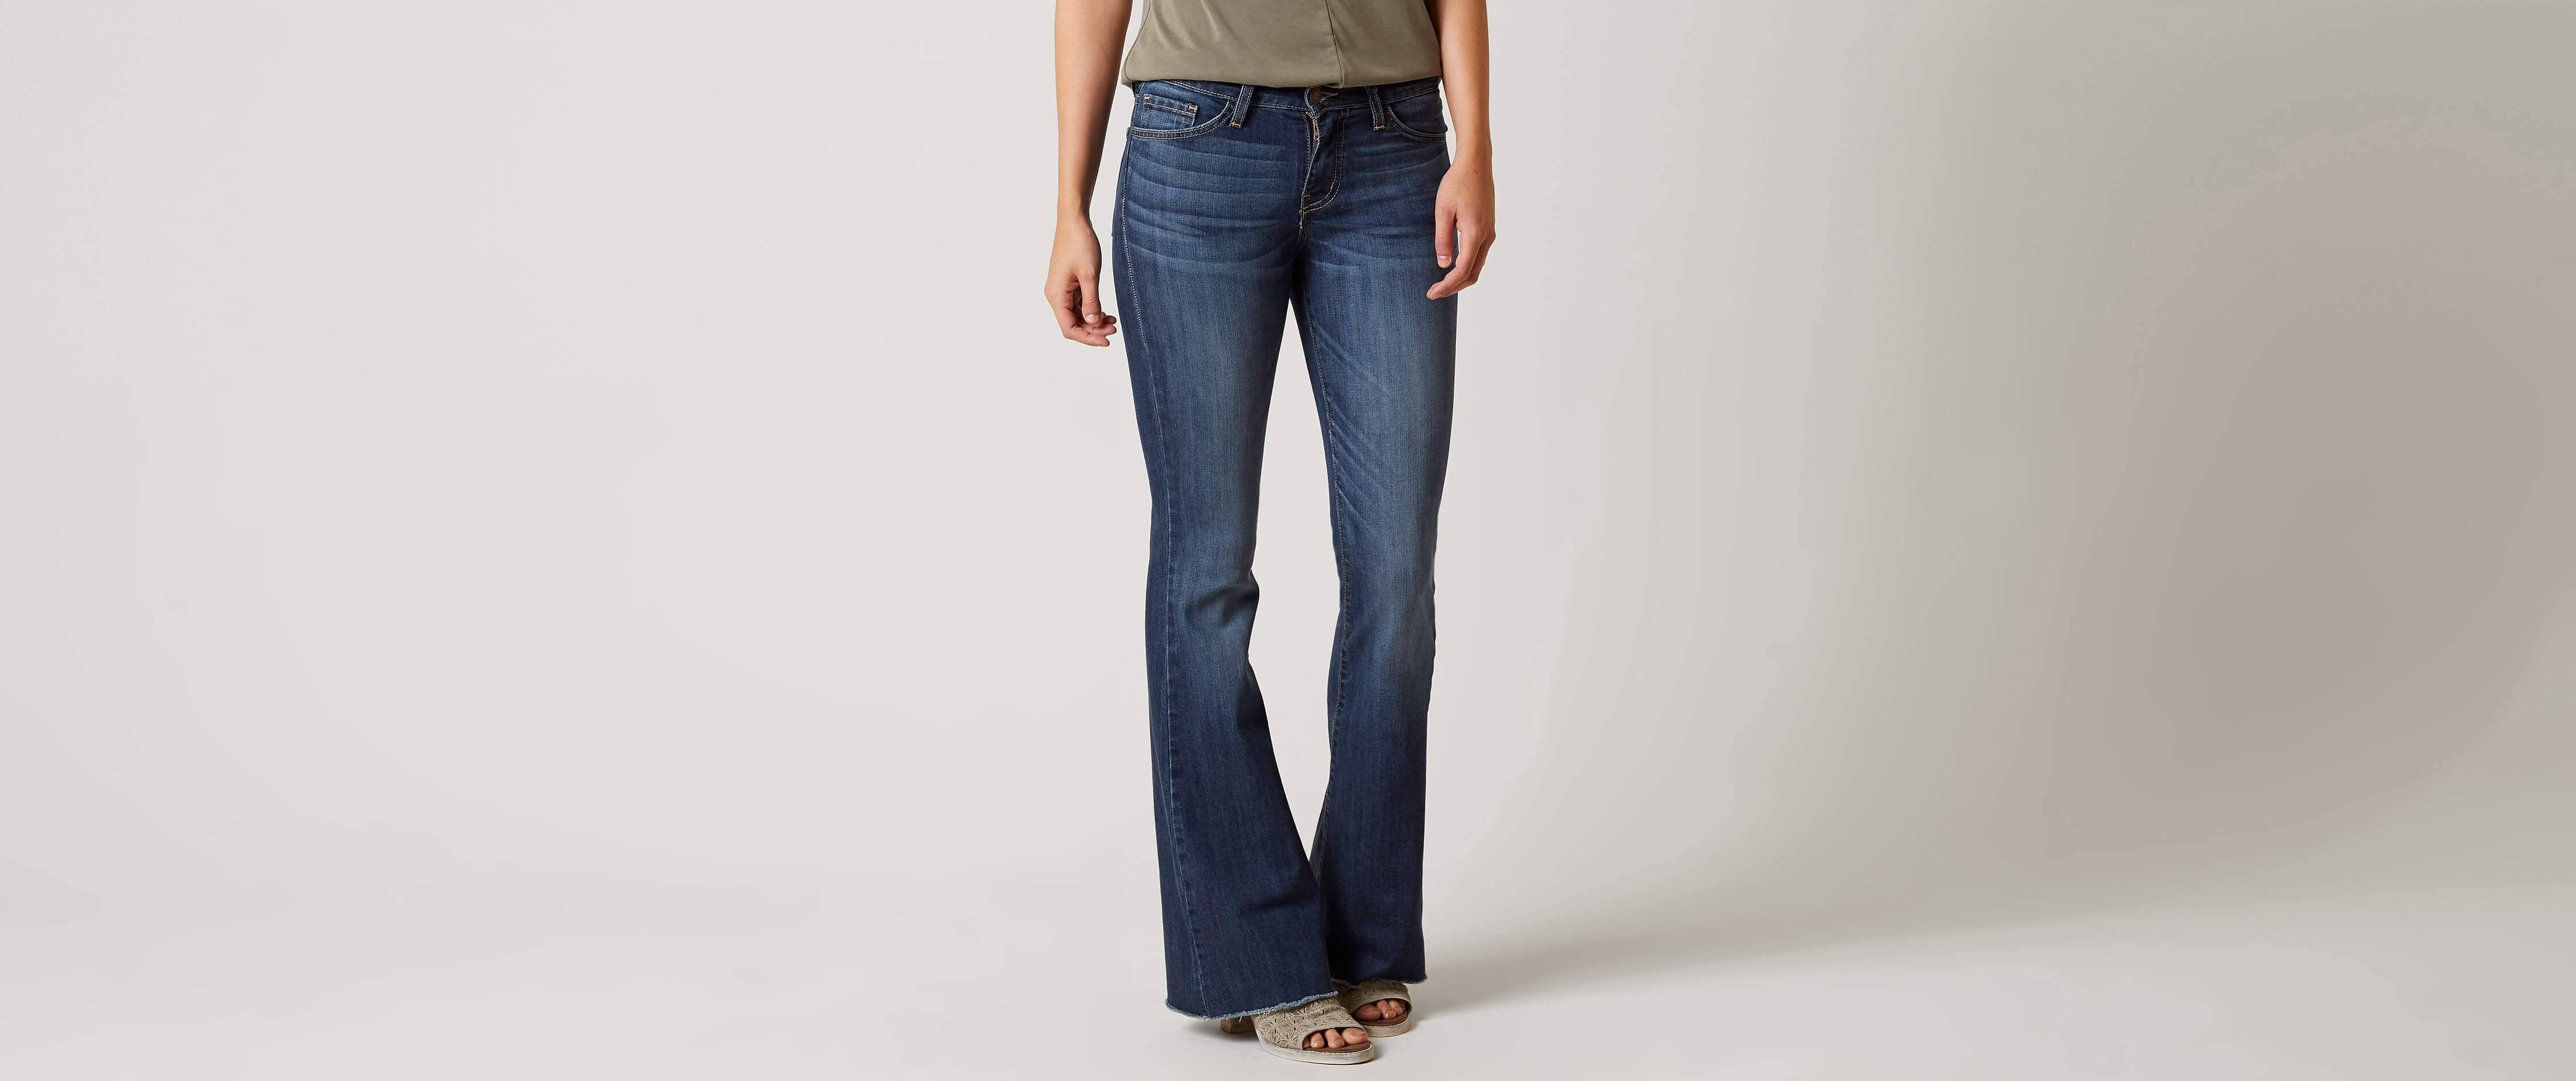 Flying Monkey Mid-Rise Flare Stretch Jean for cheap